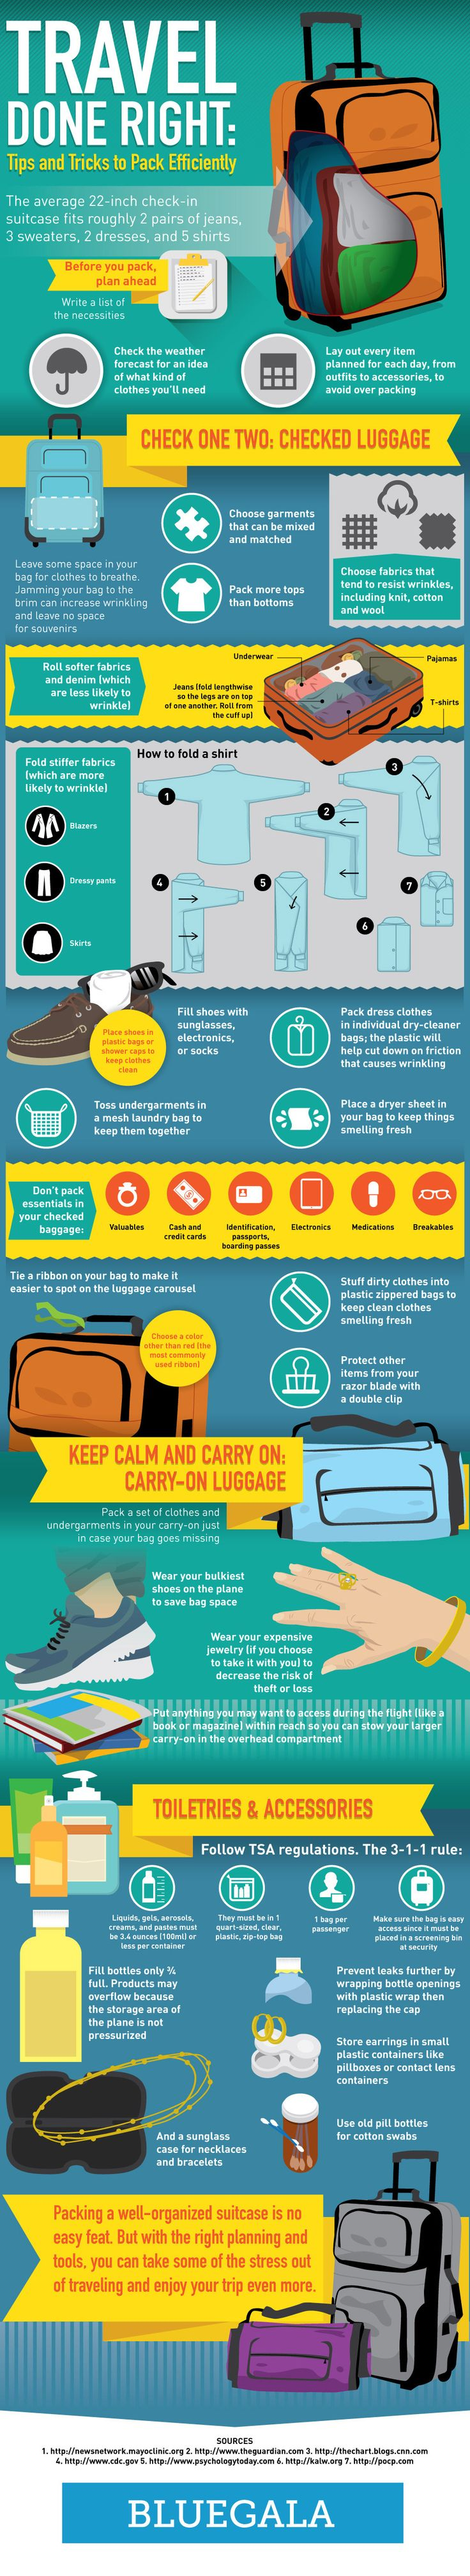 how to pack carry on luggage